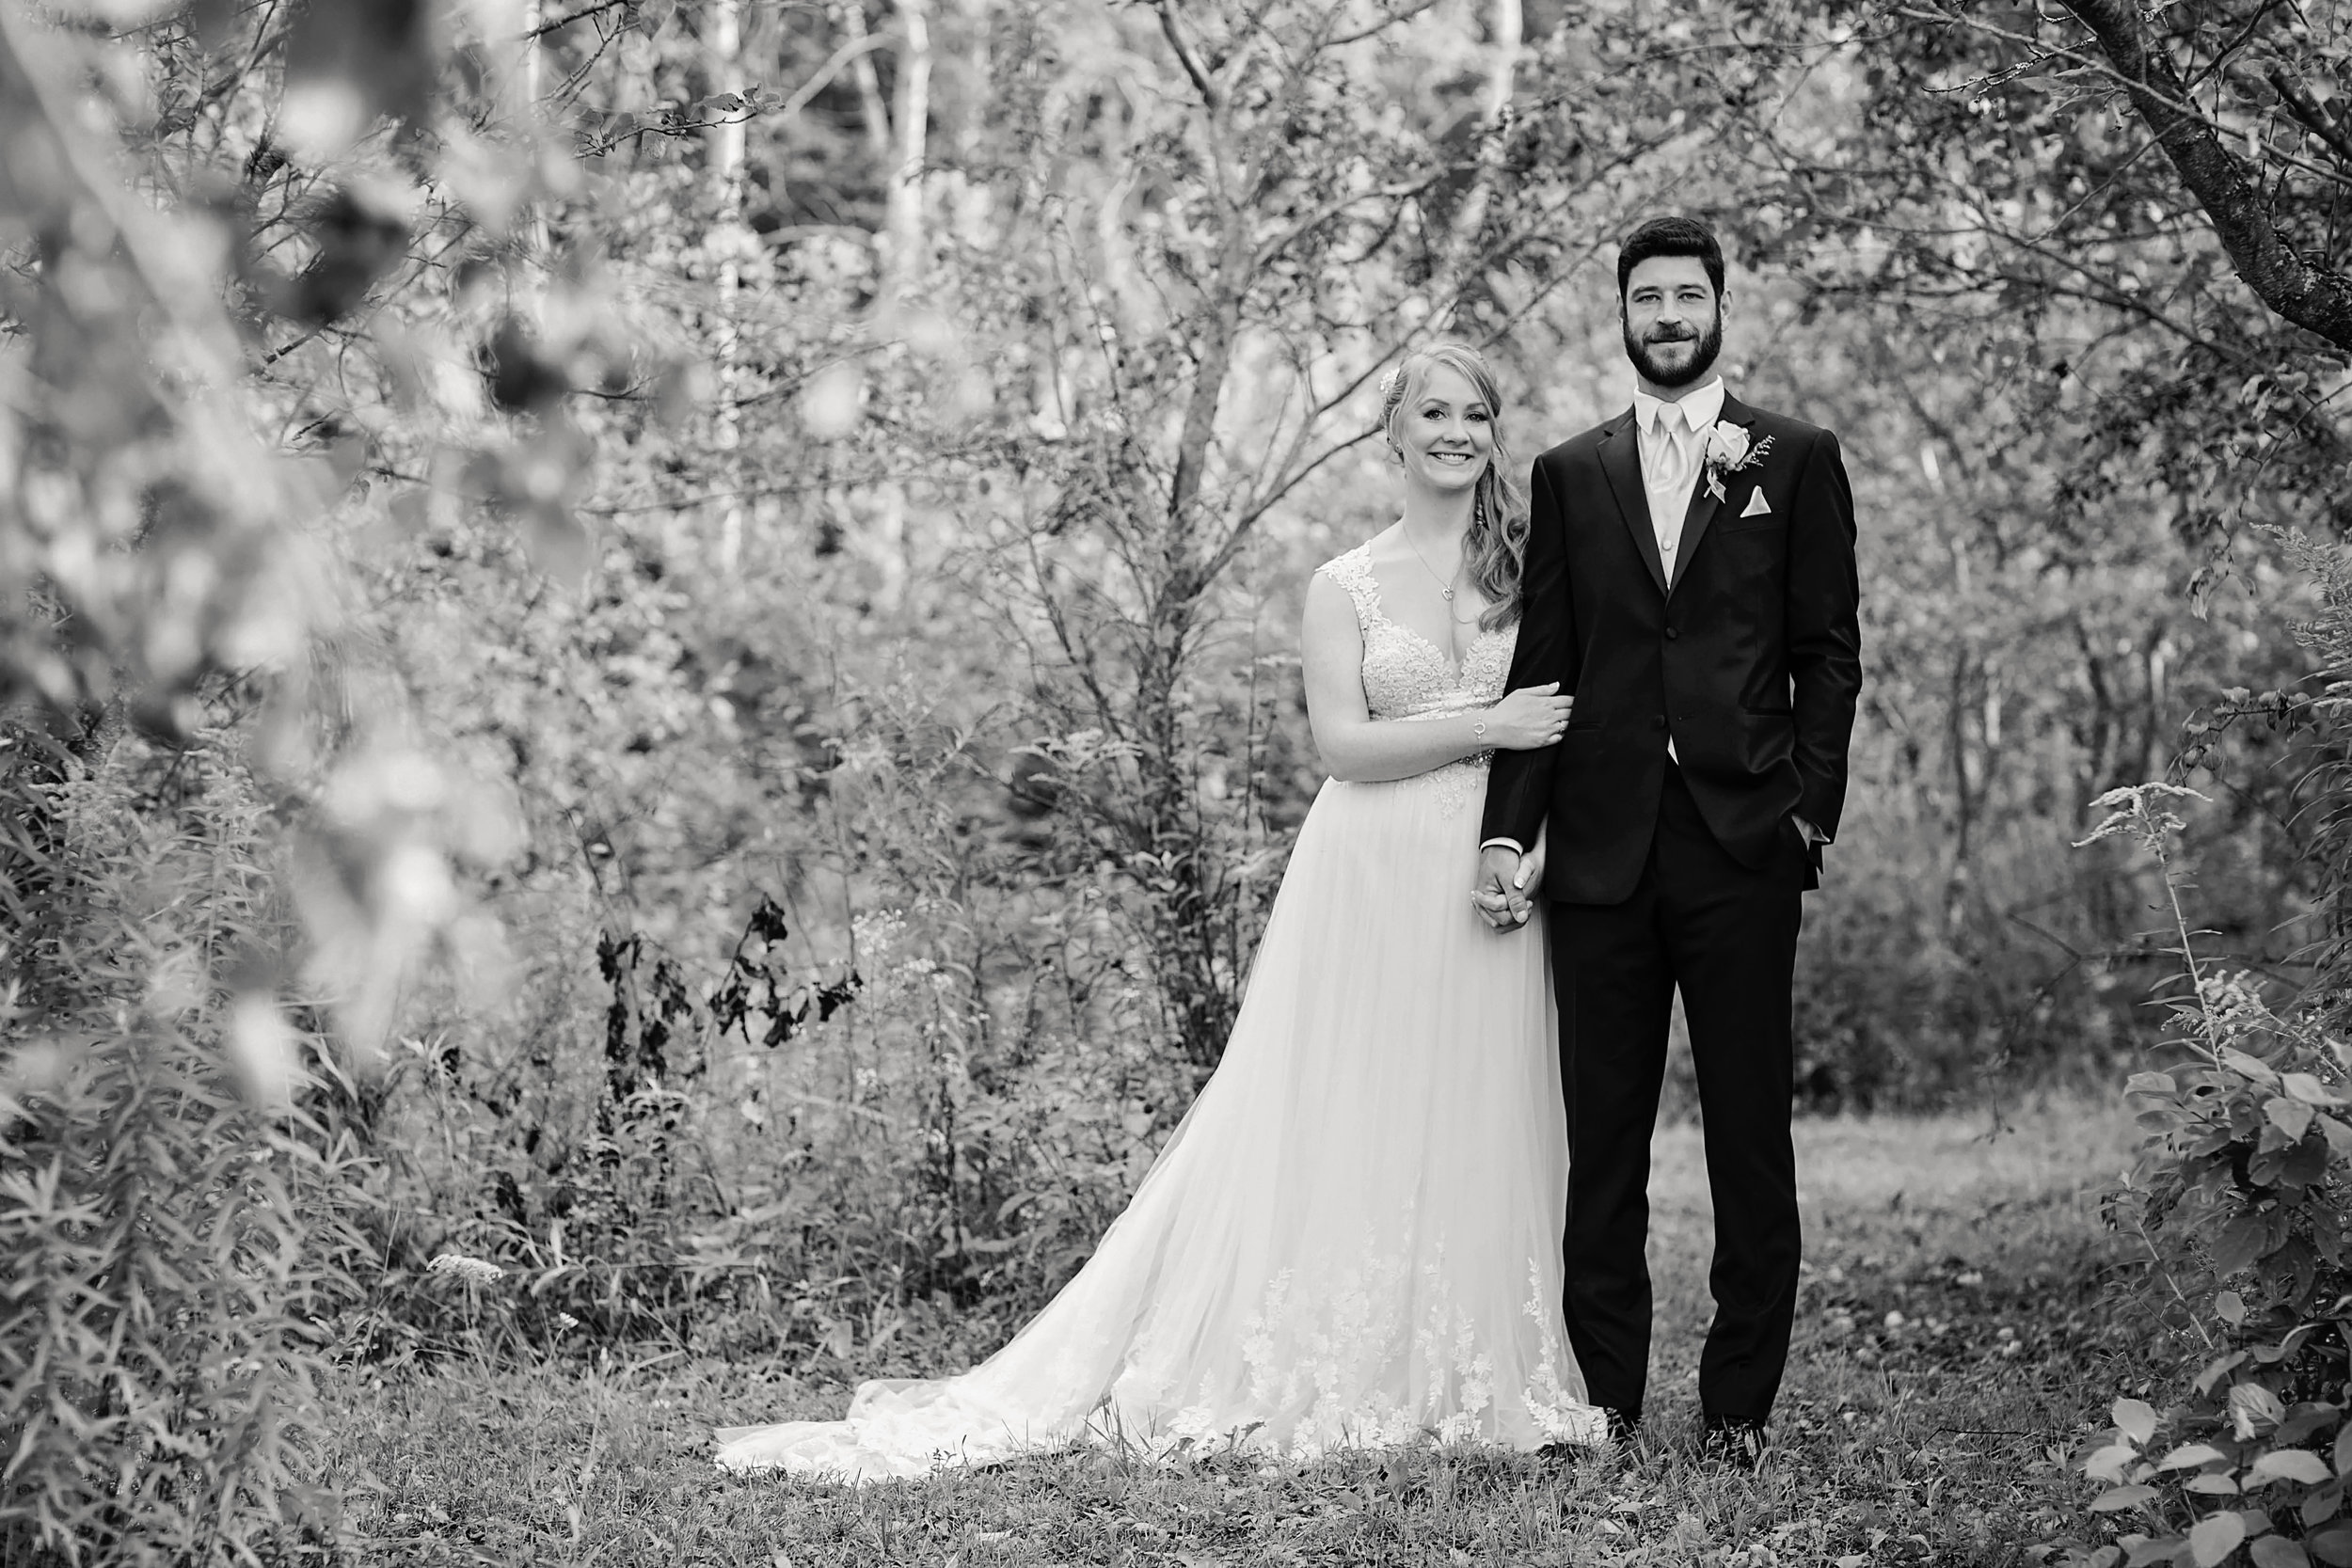 Morgan Bress Photography | Lindsay Wedding Photographer | Kawartha Lakes Wedding Photographer | Ontario Wedding Photographer |  Apple Orchard Wedding, Wedding Love, Romance, Light and Airy, Black and White Photography